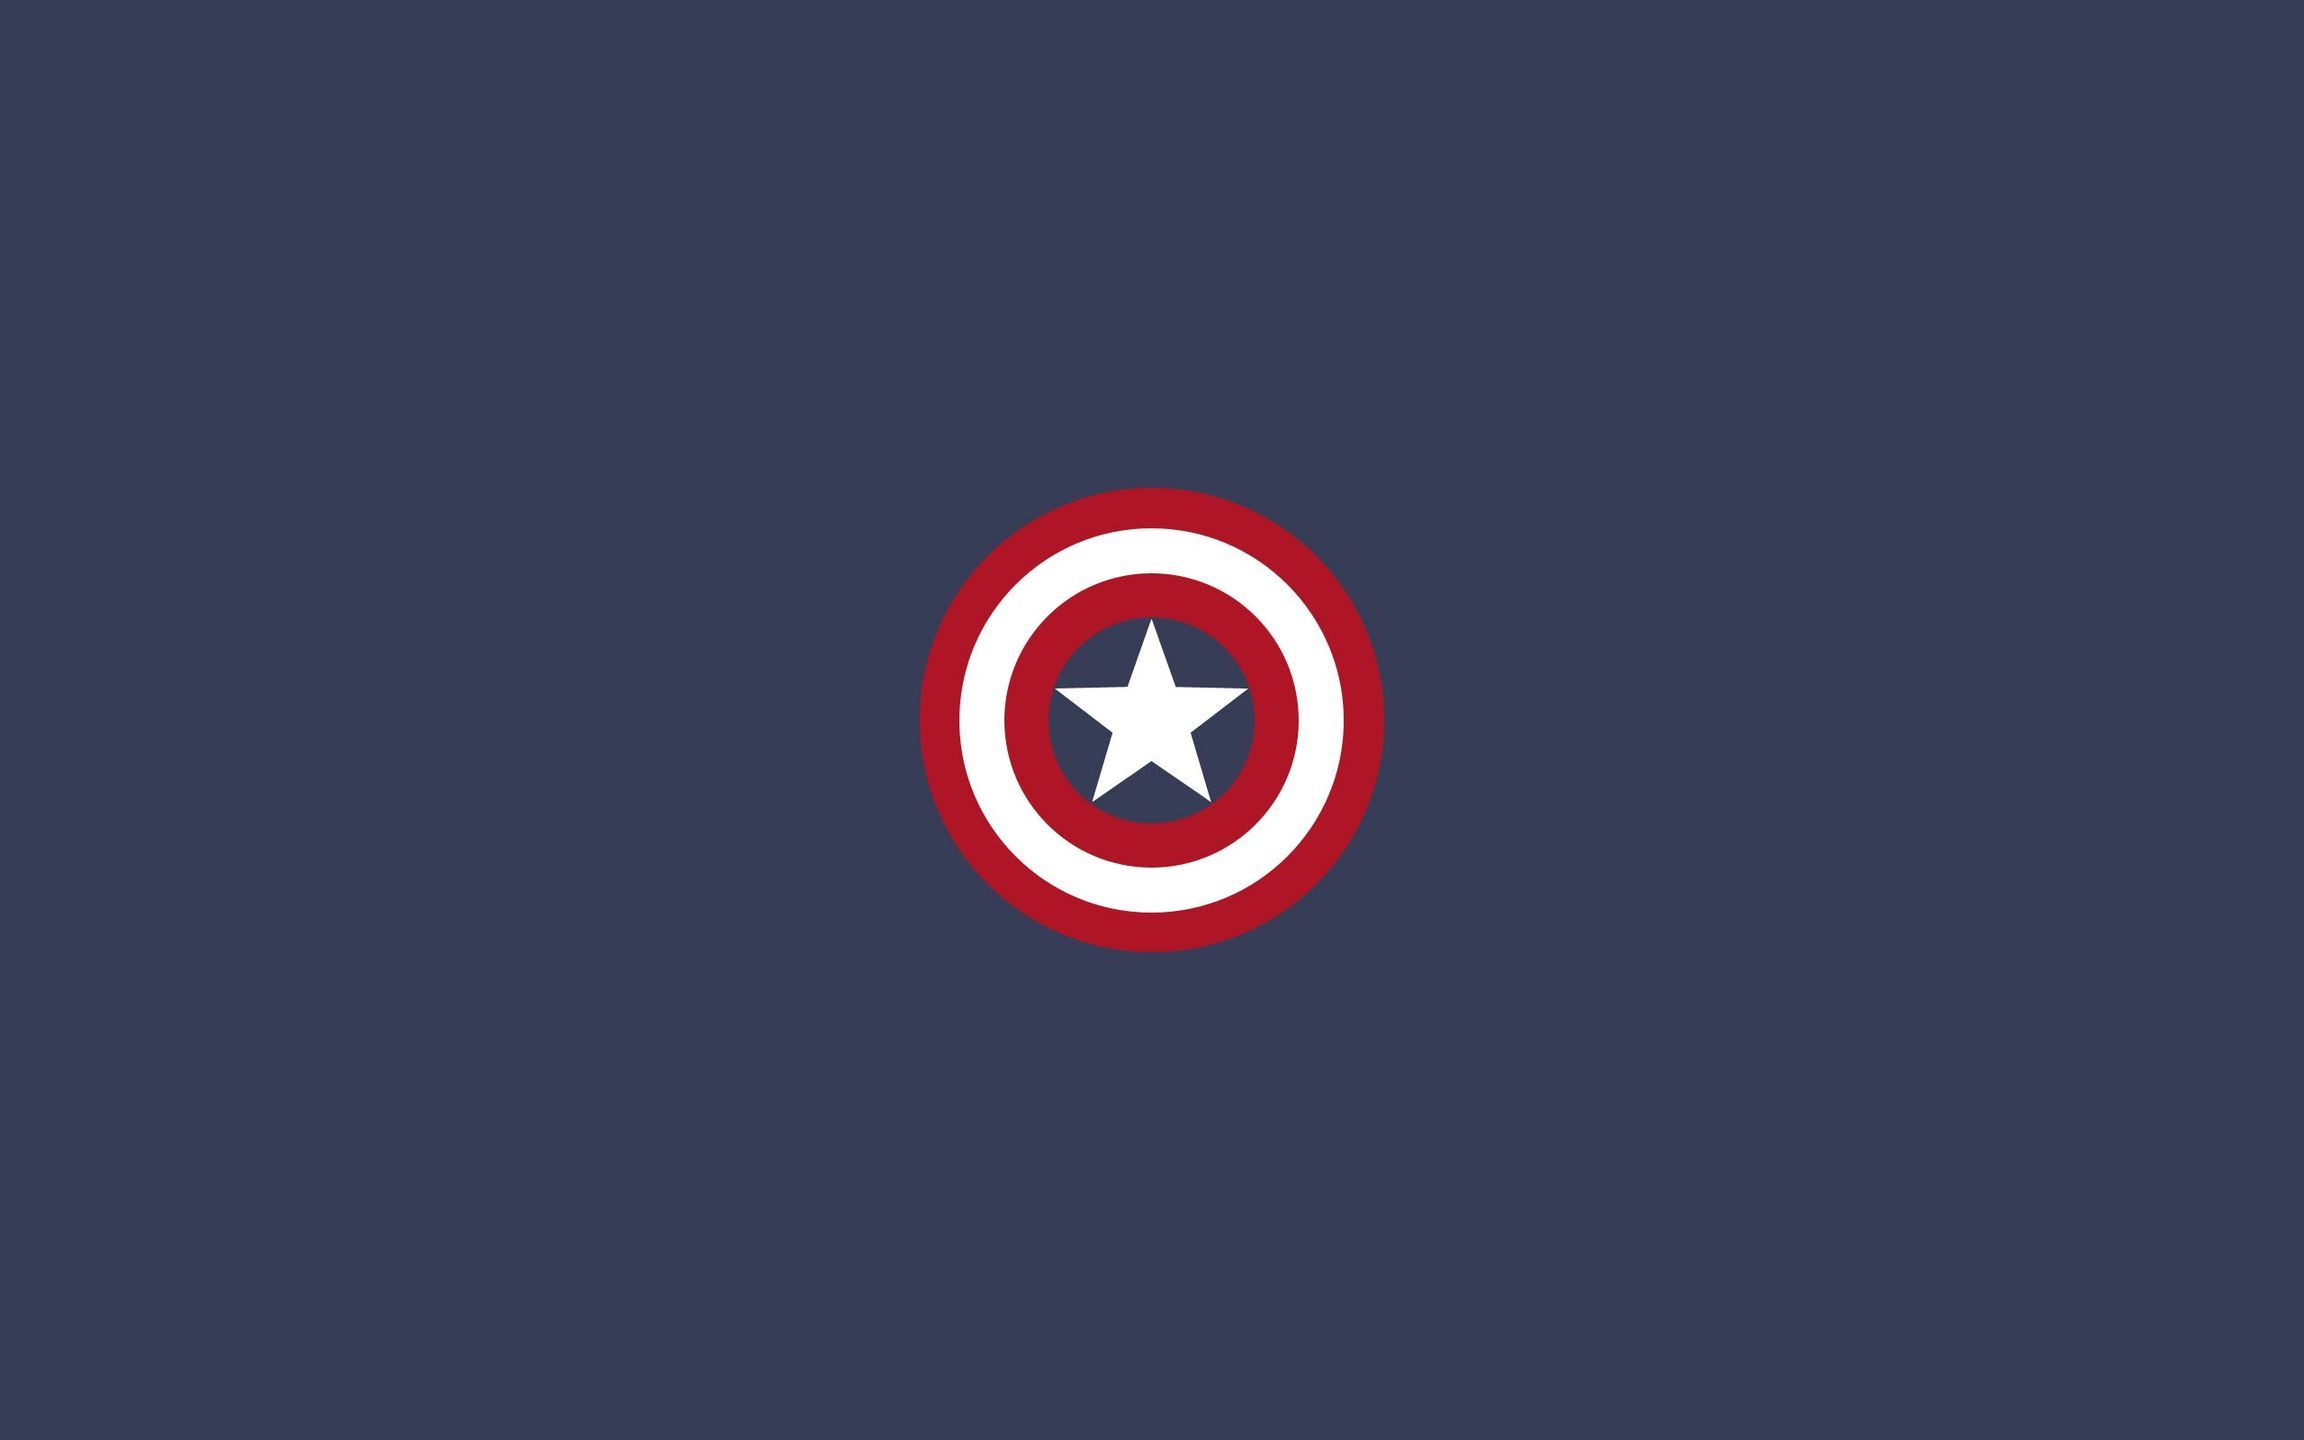 Captain America Shield Wallpaper Captain America Wallpaper Captain America Shield Wallpaper Minimalist Wallpaper